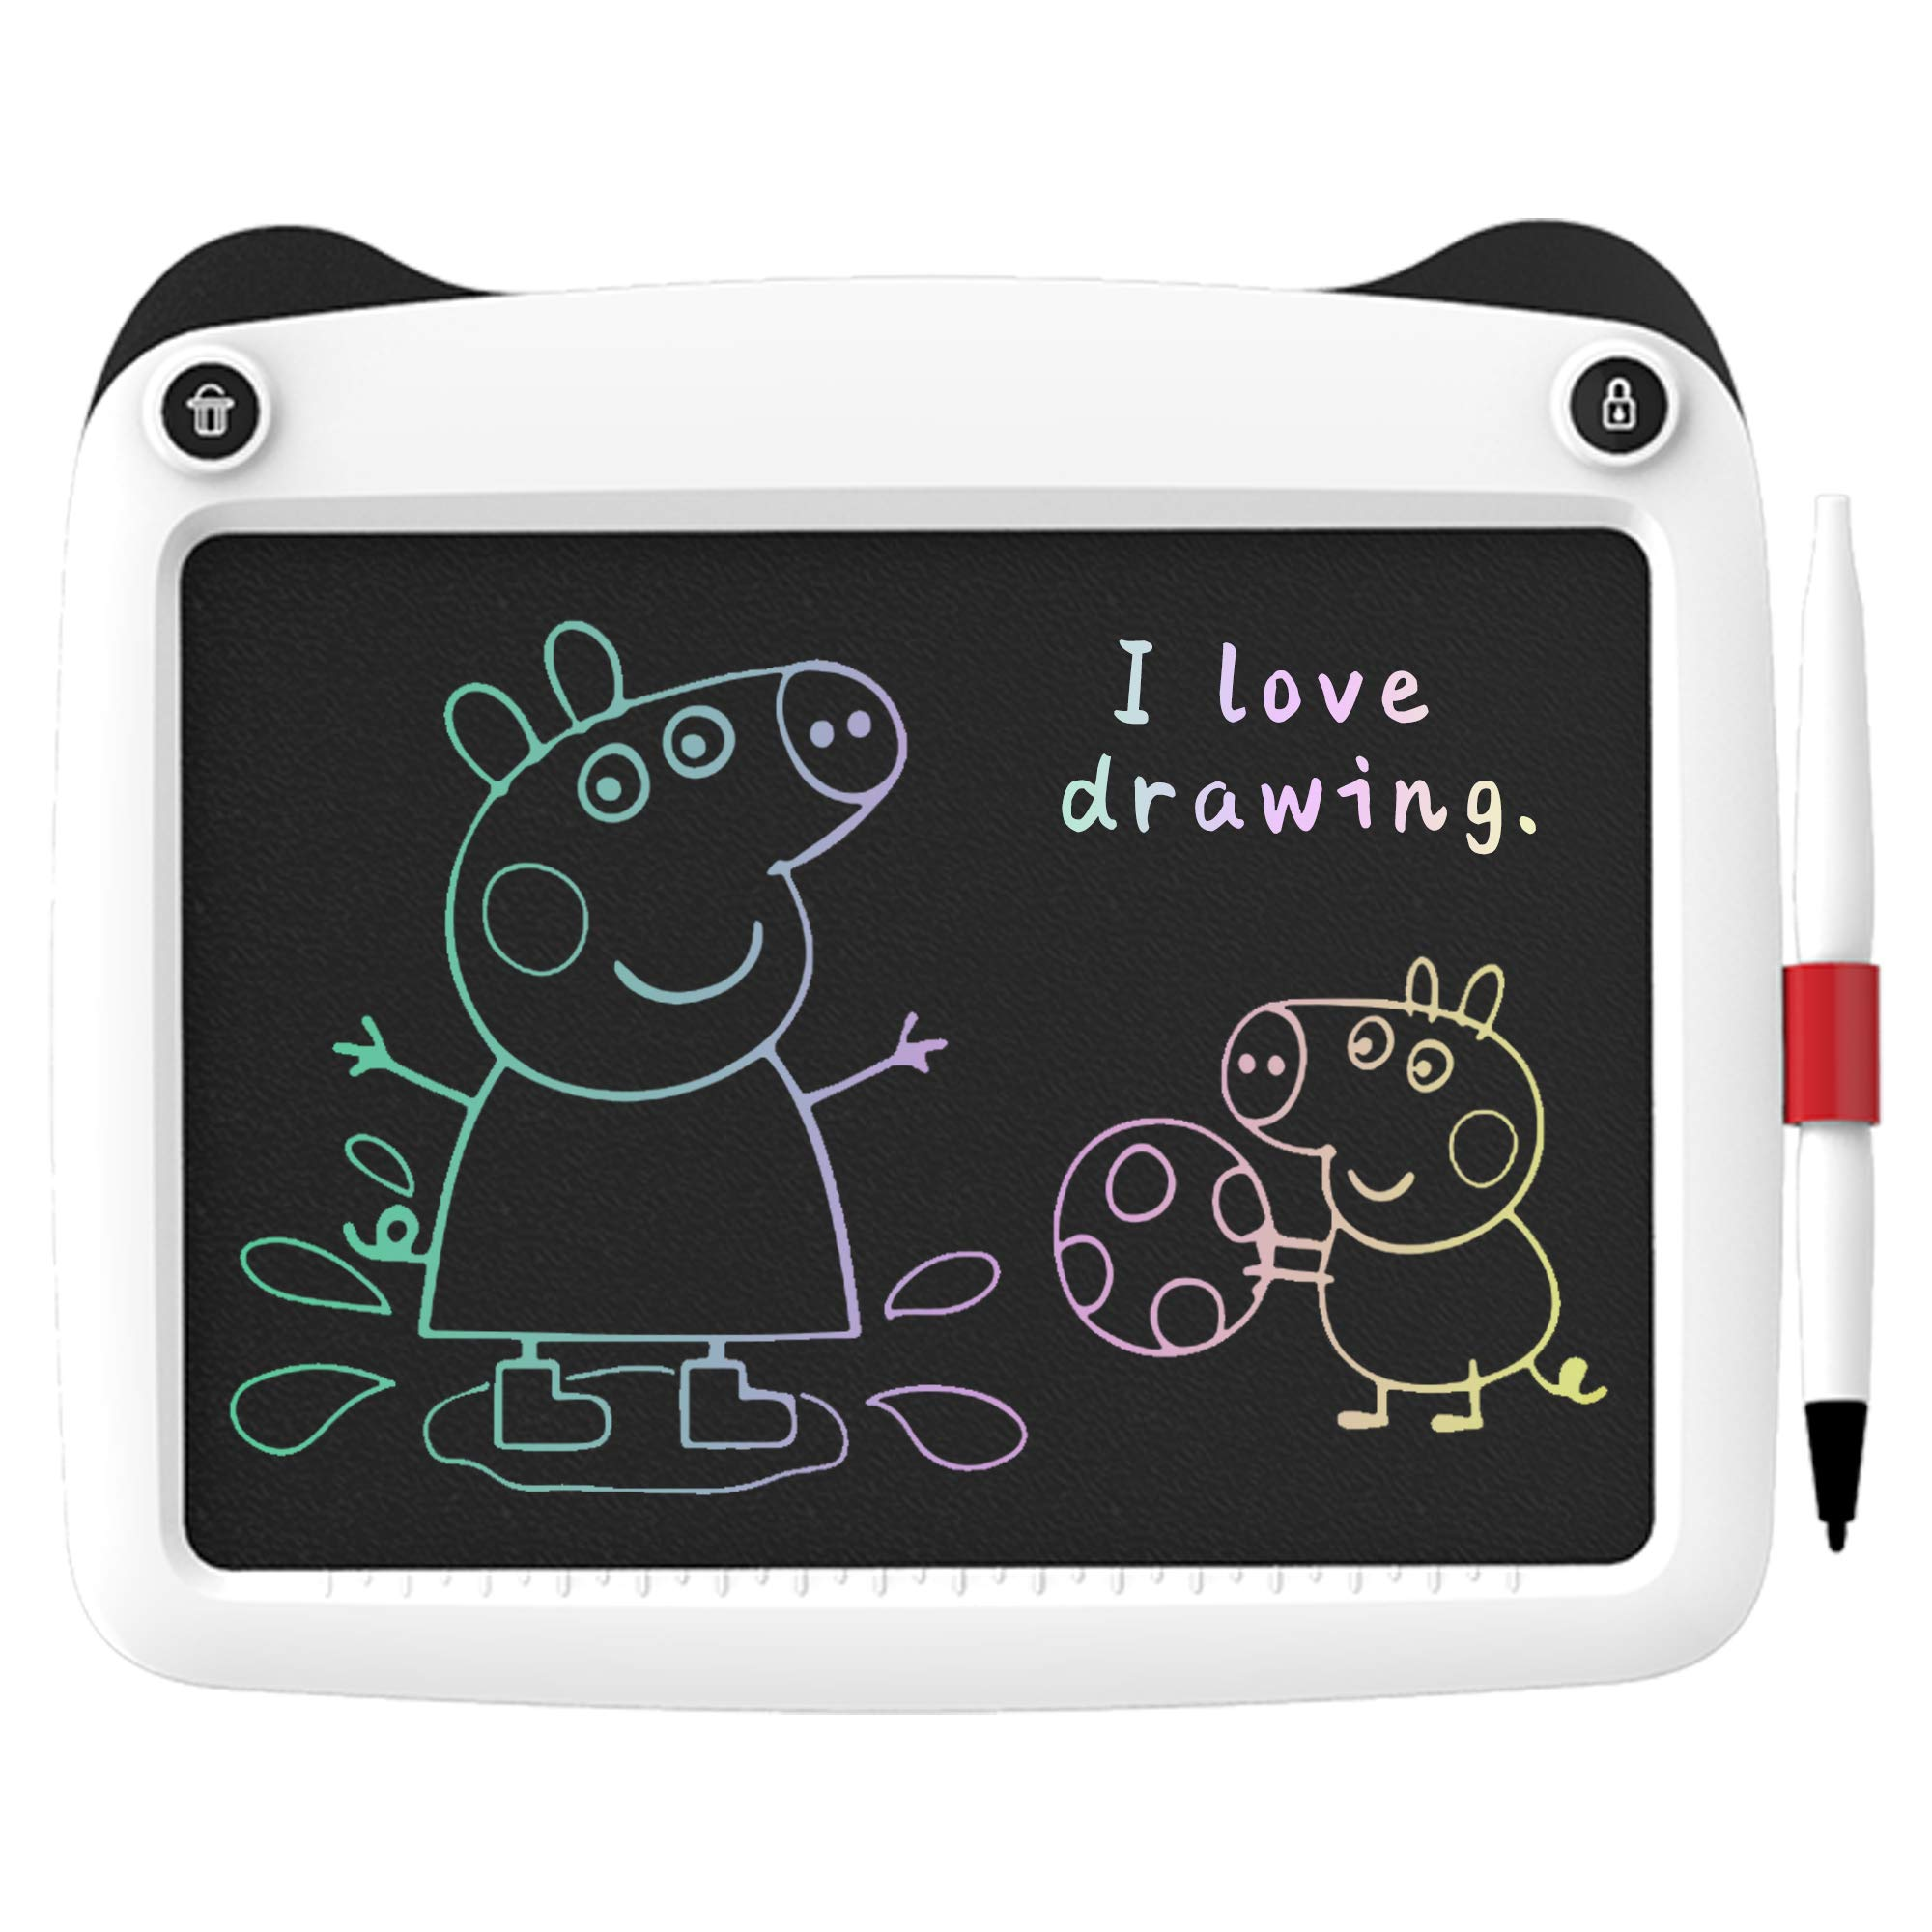 FLUESTON LCD Writing Board 9 Inch Drawing Tablet for Kids, e-Writer Doodle Board and Colorful Screen Scribble pad for Kids Ages 3+ (White)